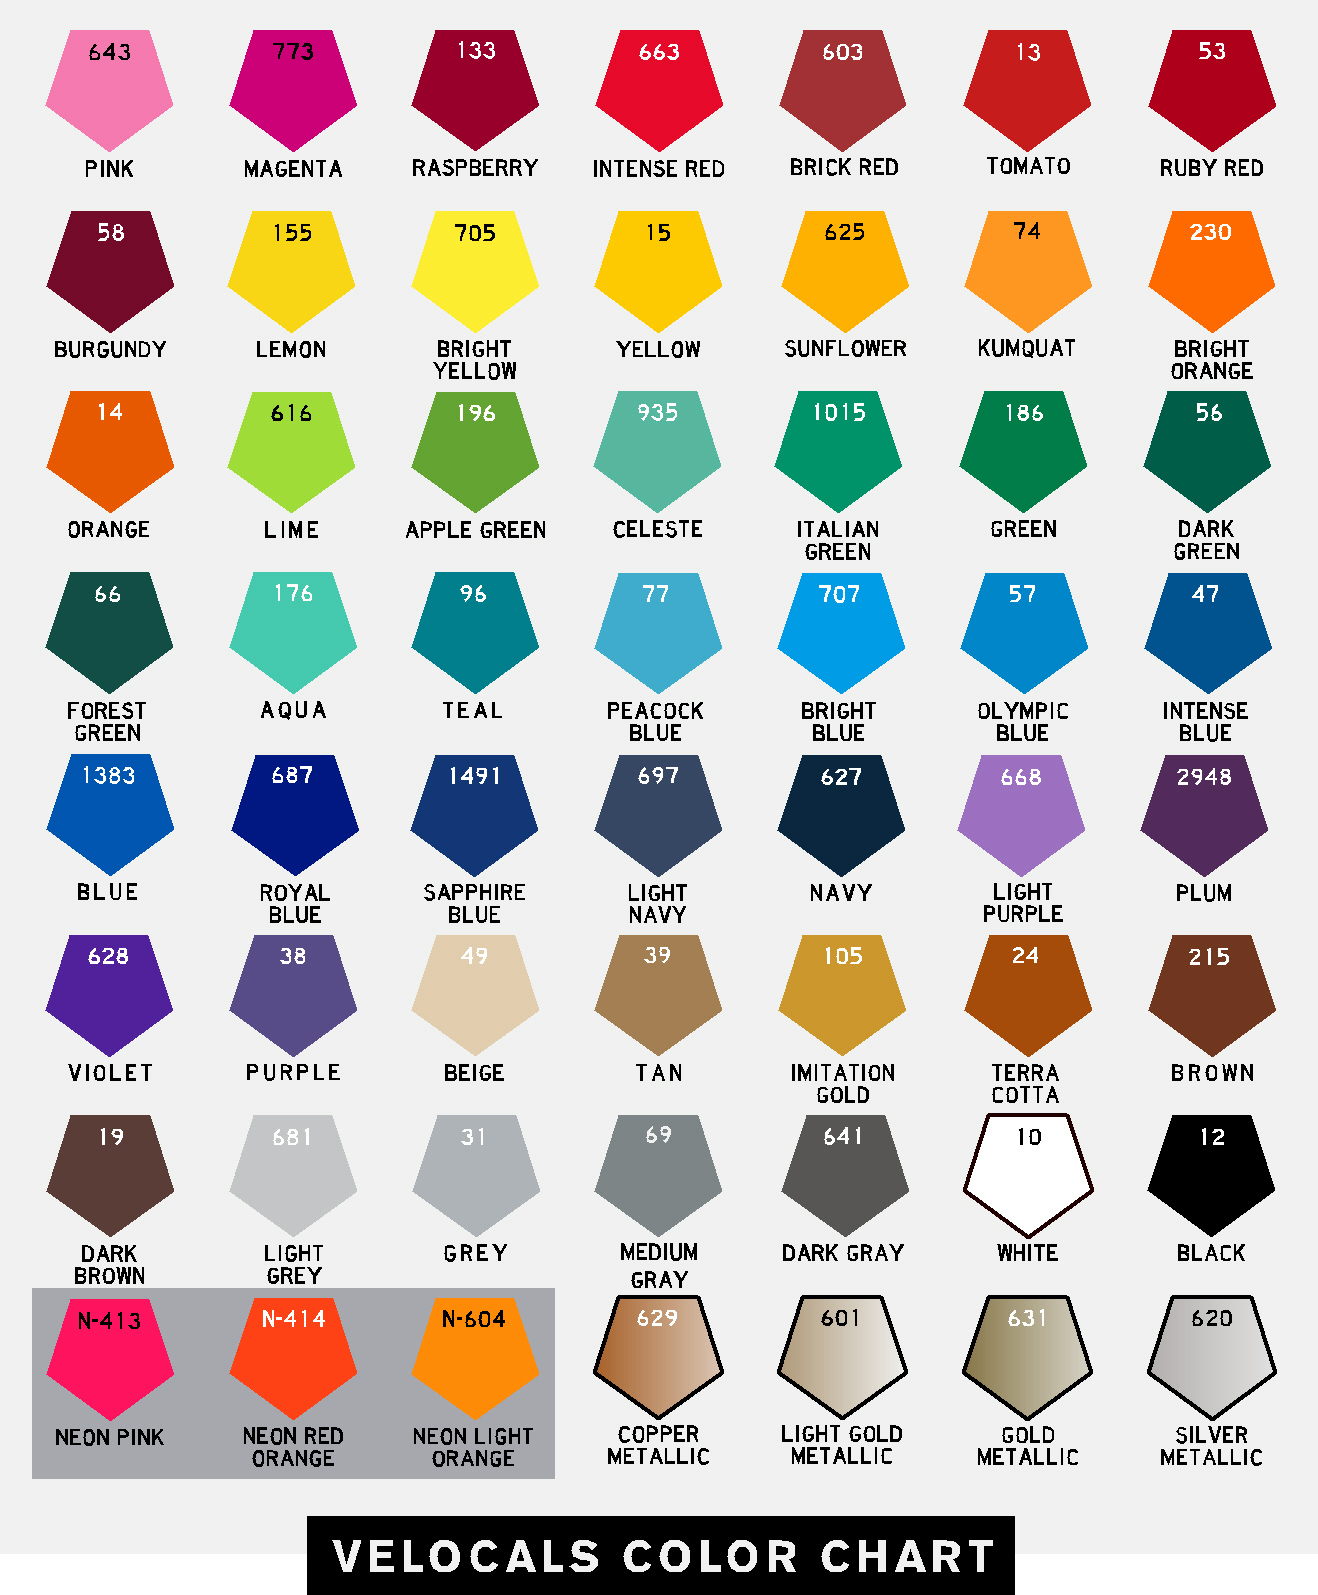 2015-velocals-color-chart.jpg